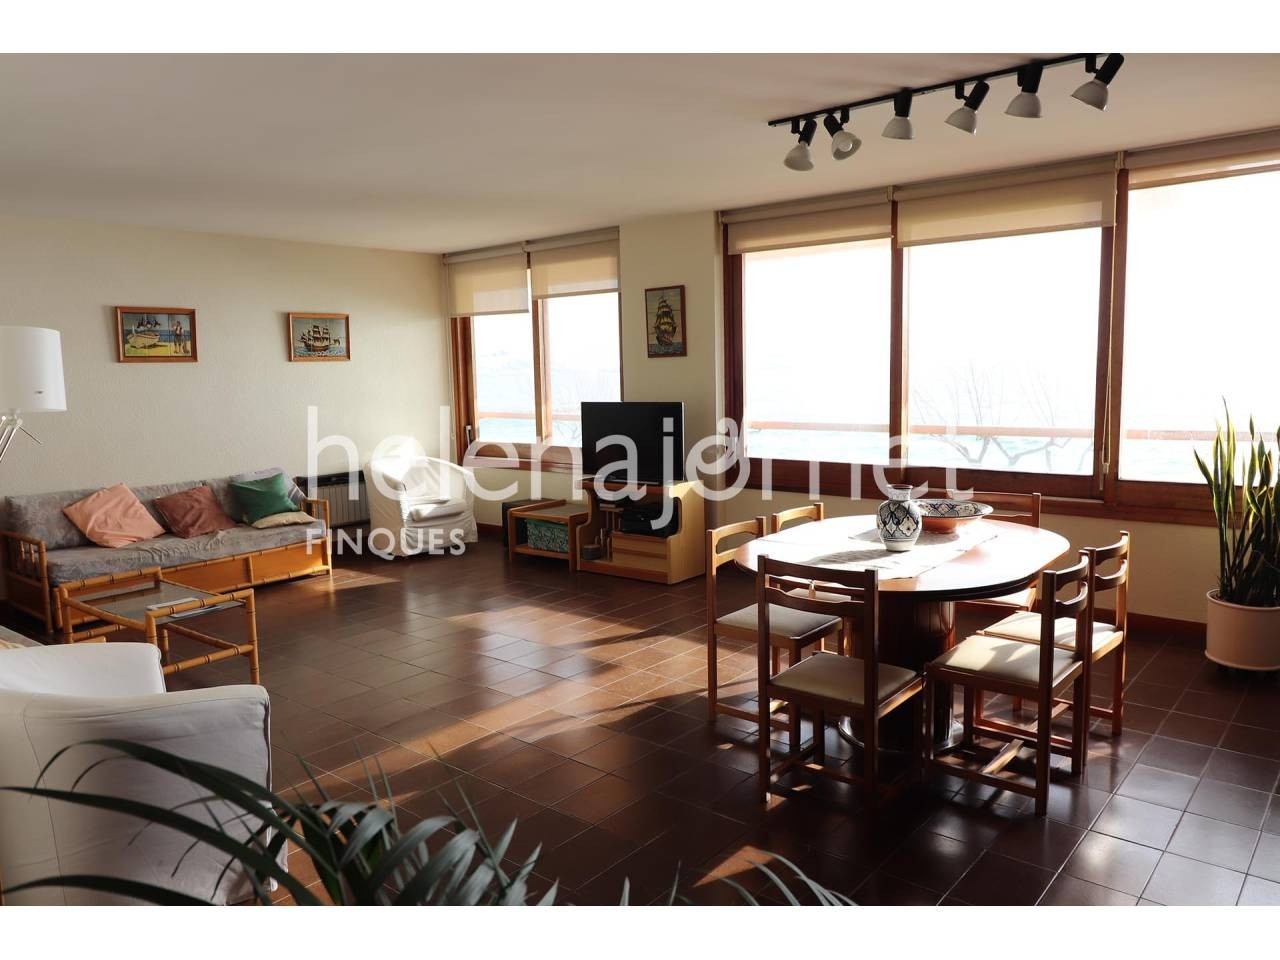 Big apartment in a privileged location in front of the beach in Sant Antoni de Calonge. - 20046